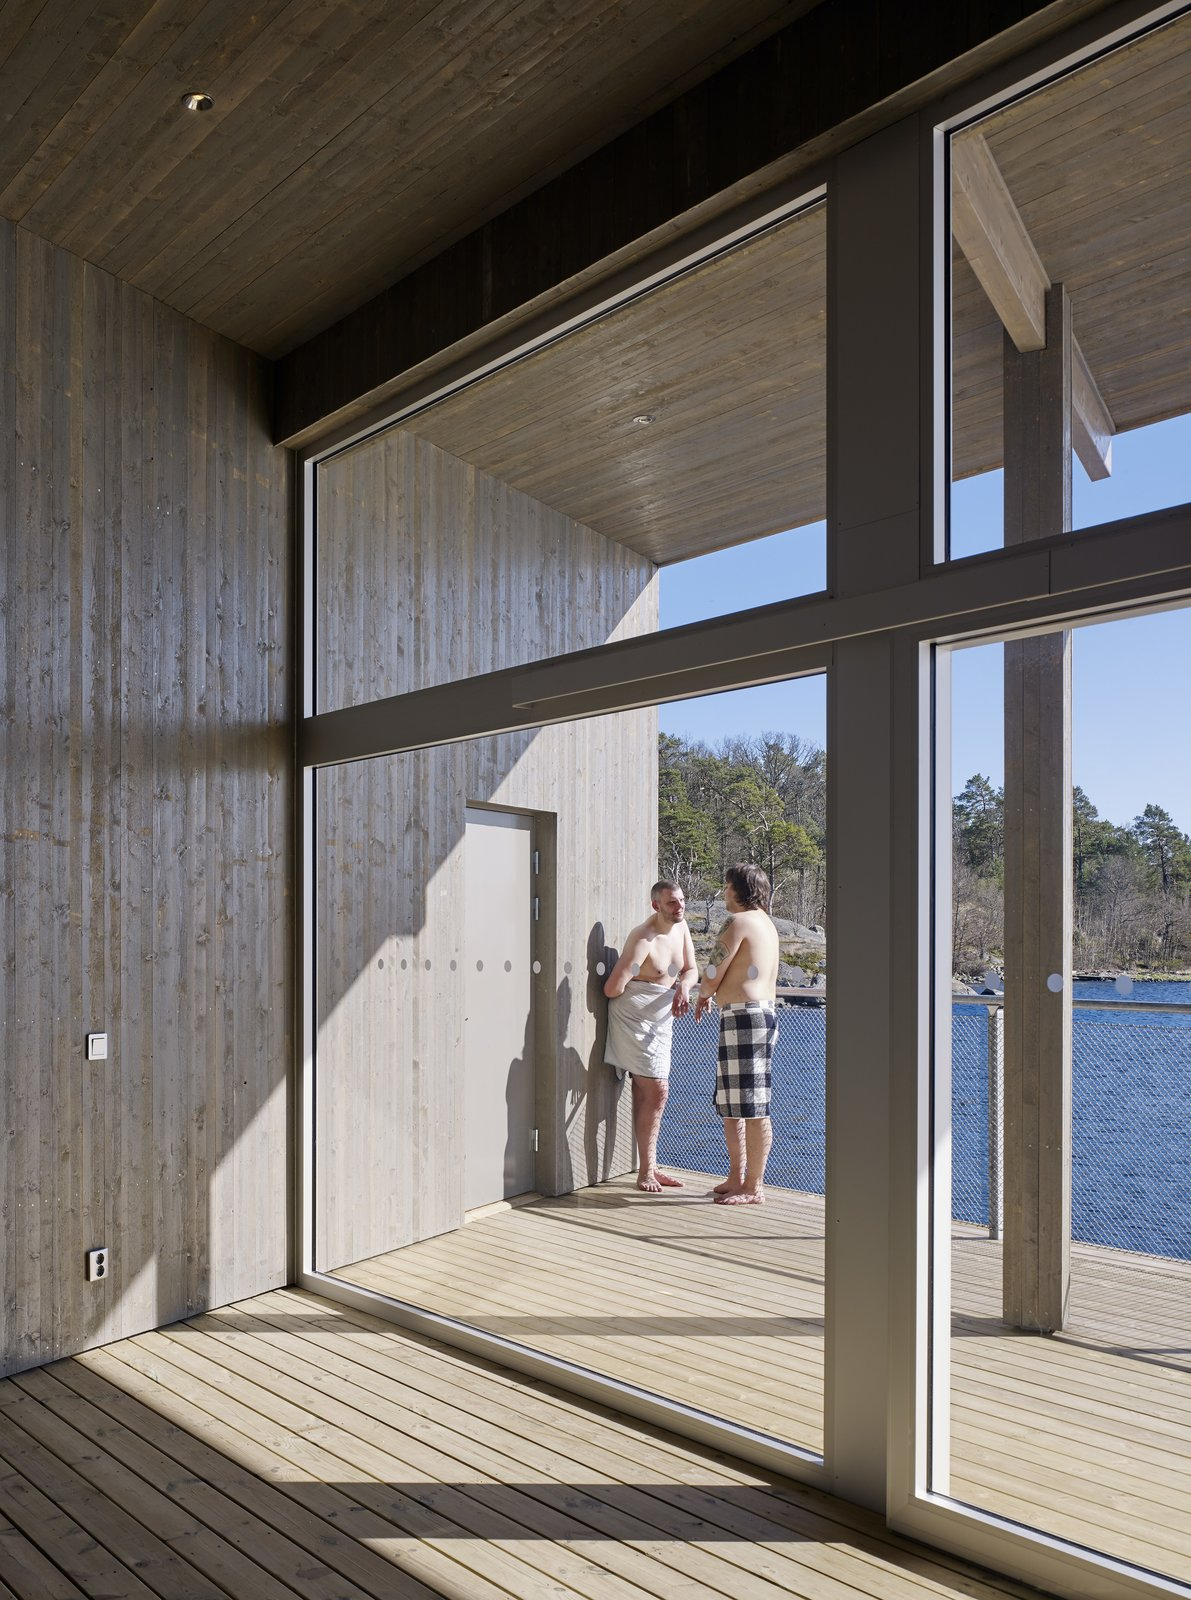 Windows  Best Photos from A Swedish Coastal Town Commissions an Otherworldly Bathhouse